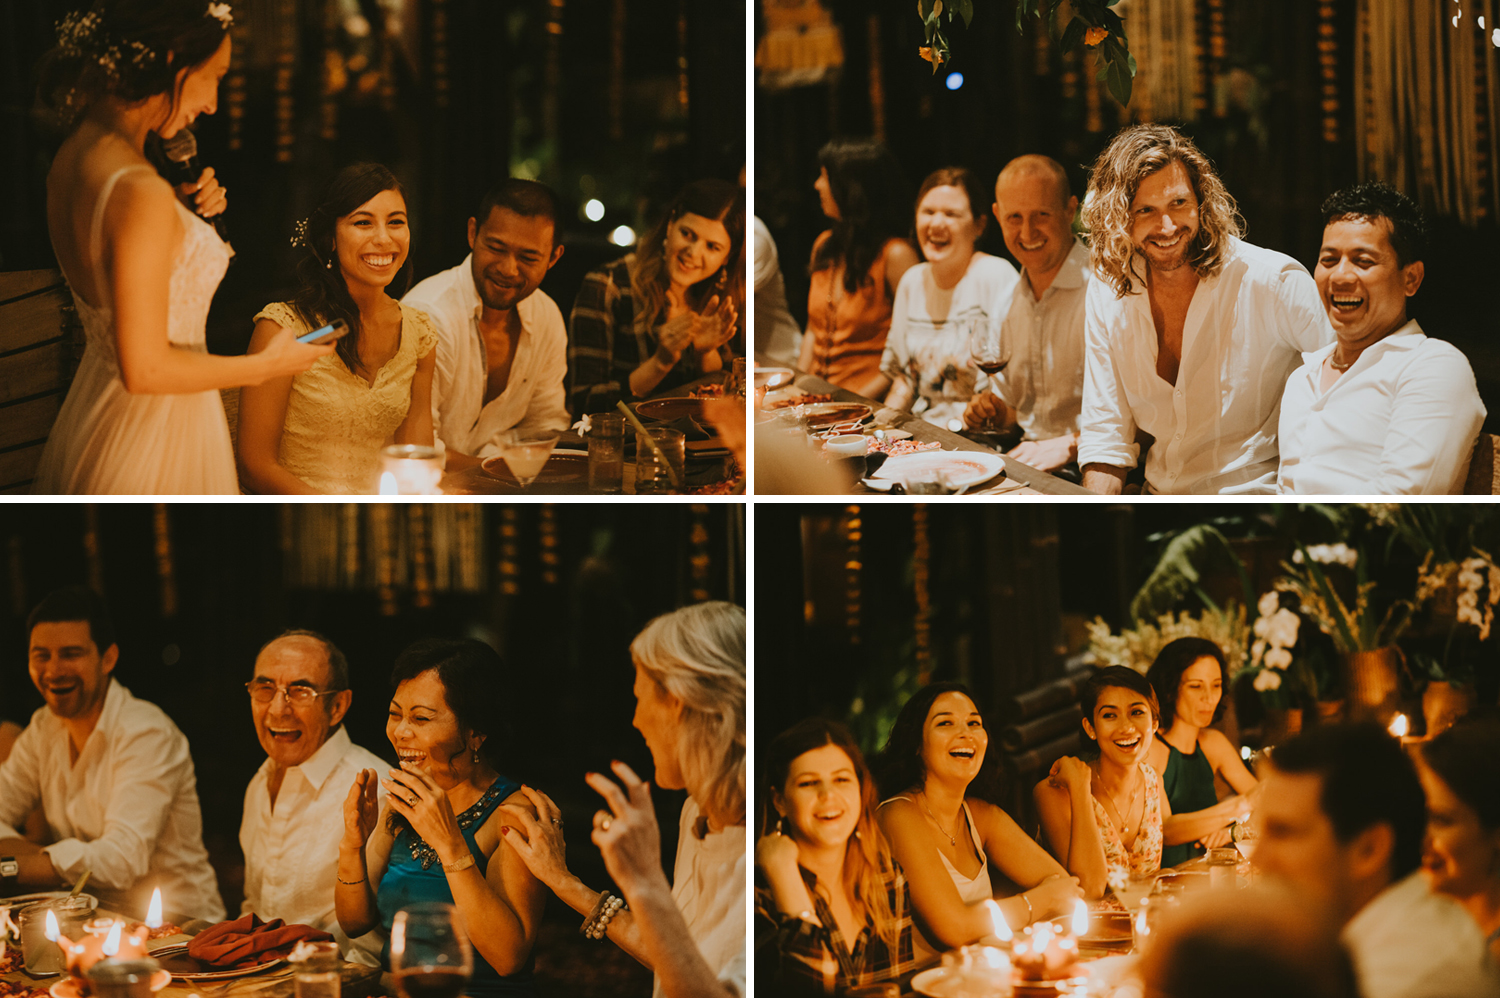 bali-wedding-ubud-wedding-wedding-destination-diktatphotography-kadek-artayasa-elaine-and-glenn-130